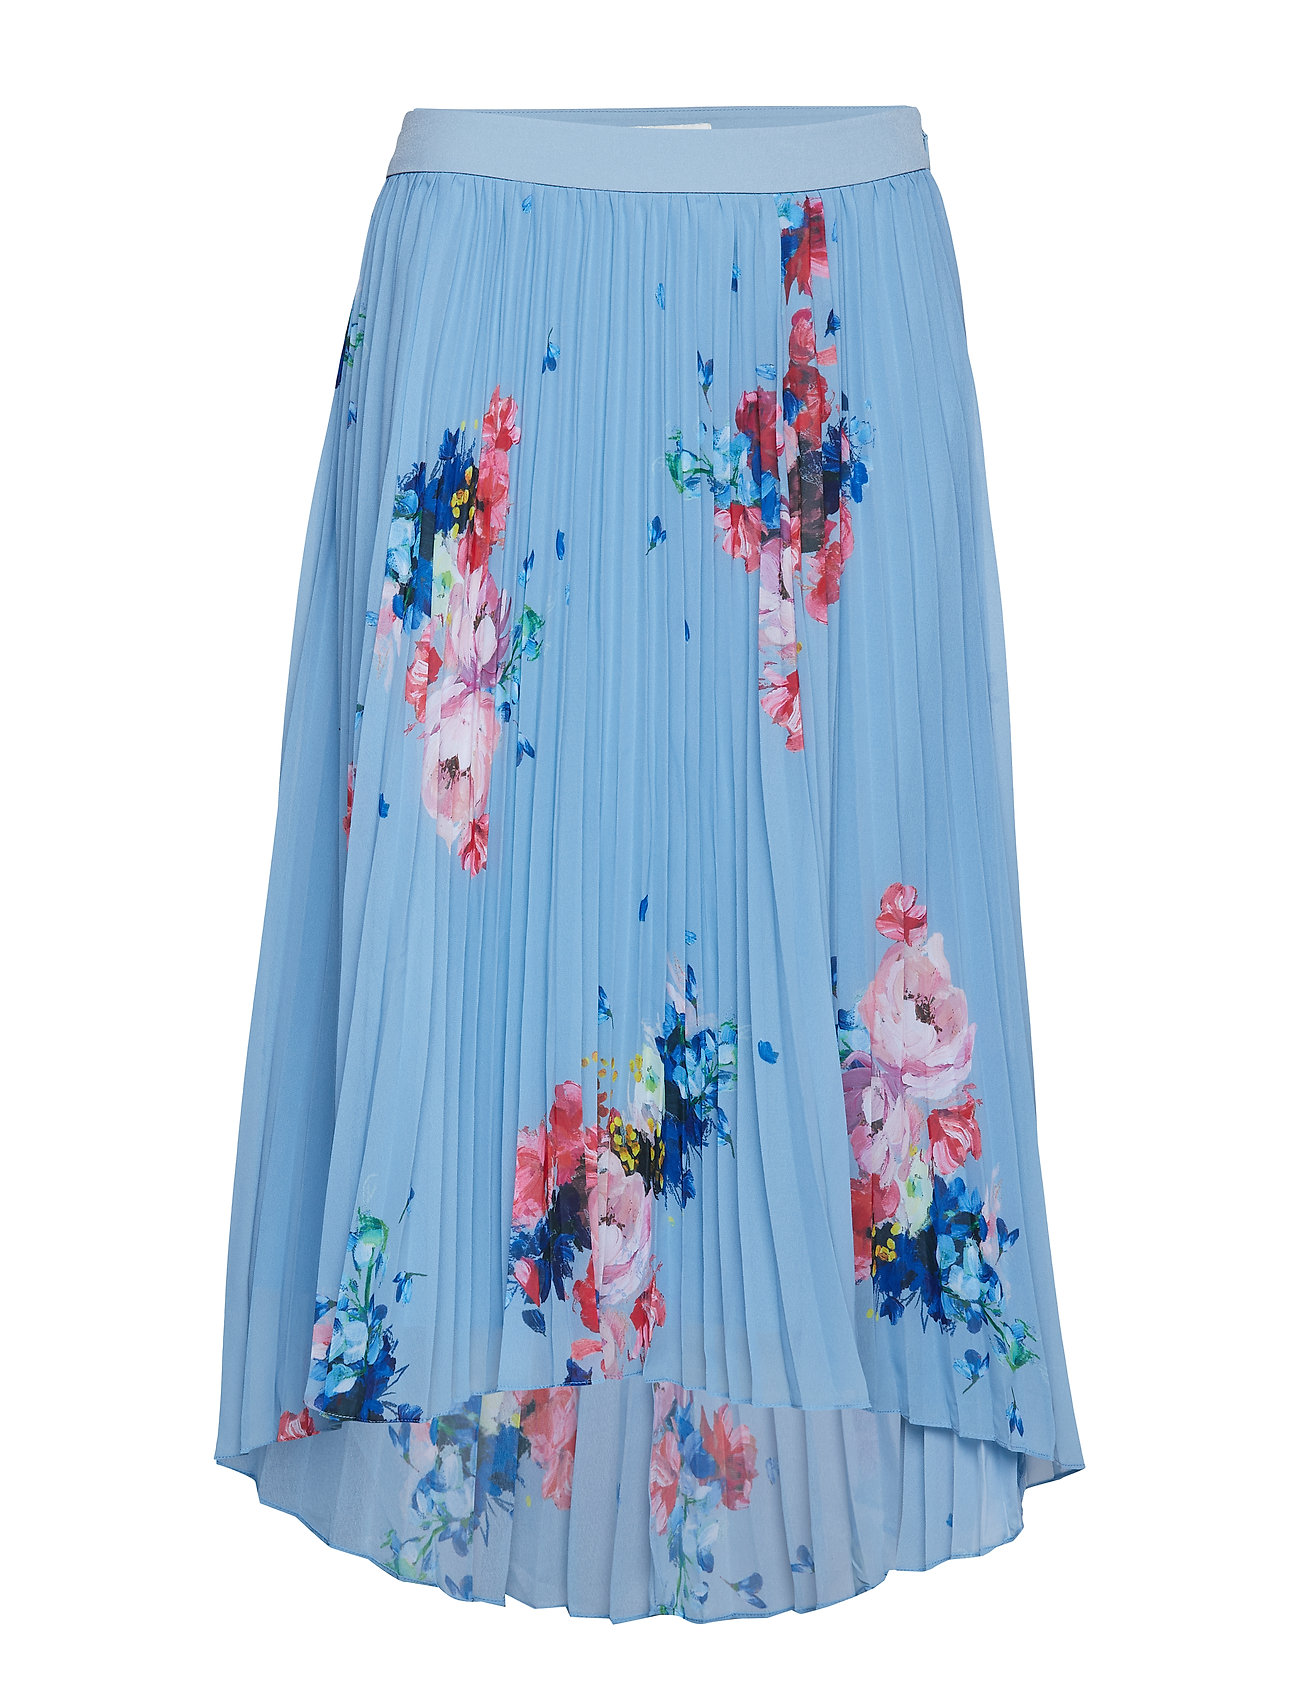 TED BAKER Harrpa Knielanges Kleid Blau TED BAKER